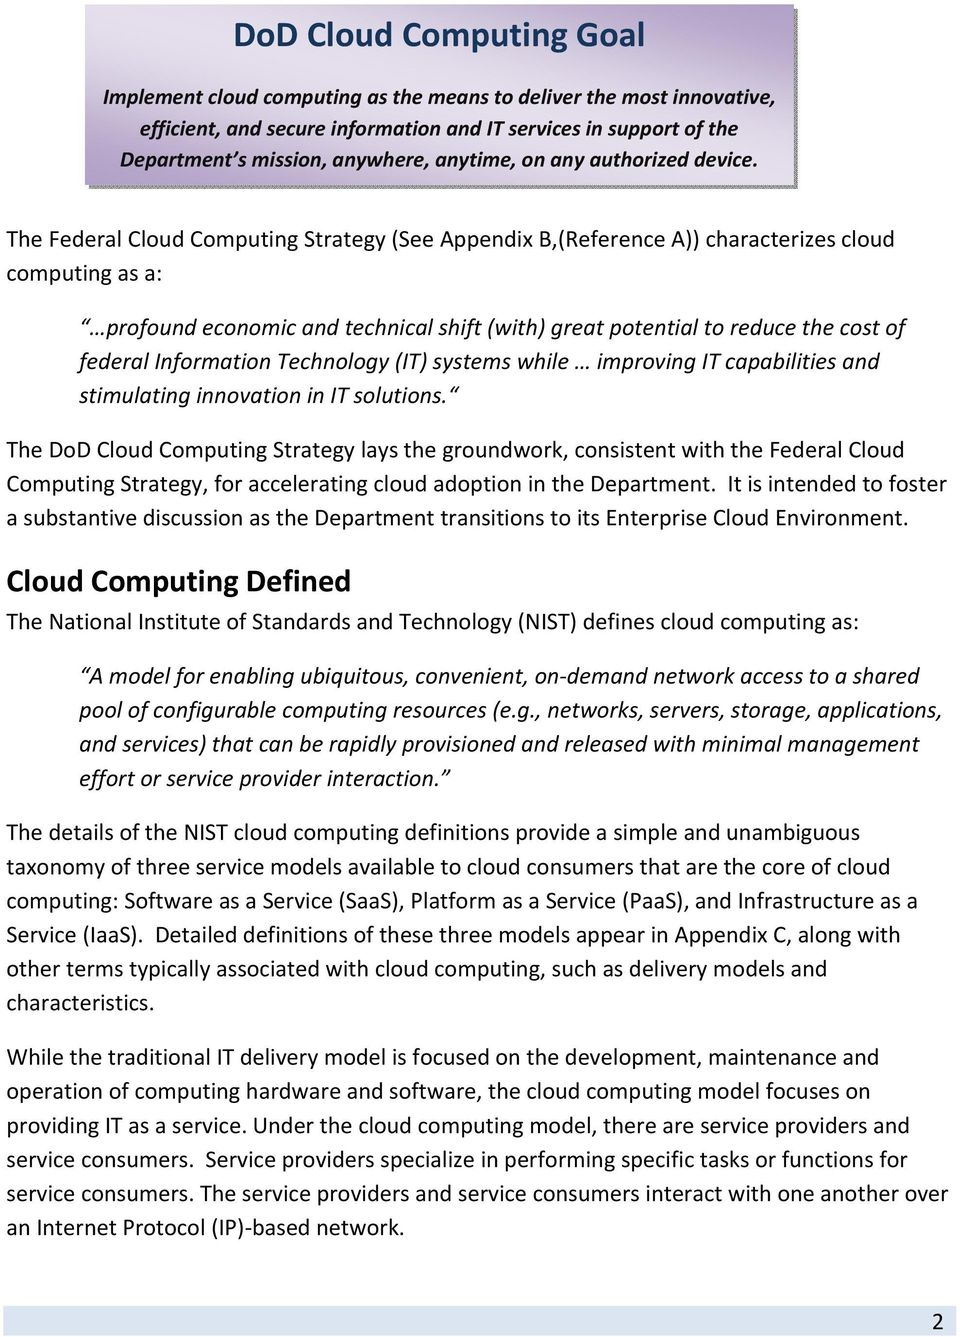 The Federal Cloud Computing Strategy (See Appendix B,(Reference A)) characterizes cloud computing as a: profound economic and technical shift (with) great potential to reduce the cost of federal